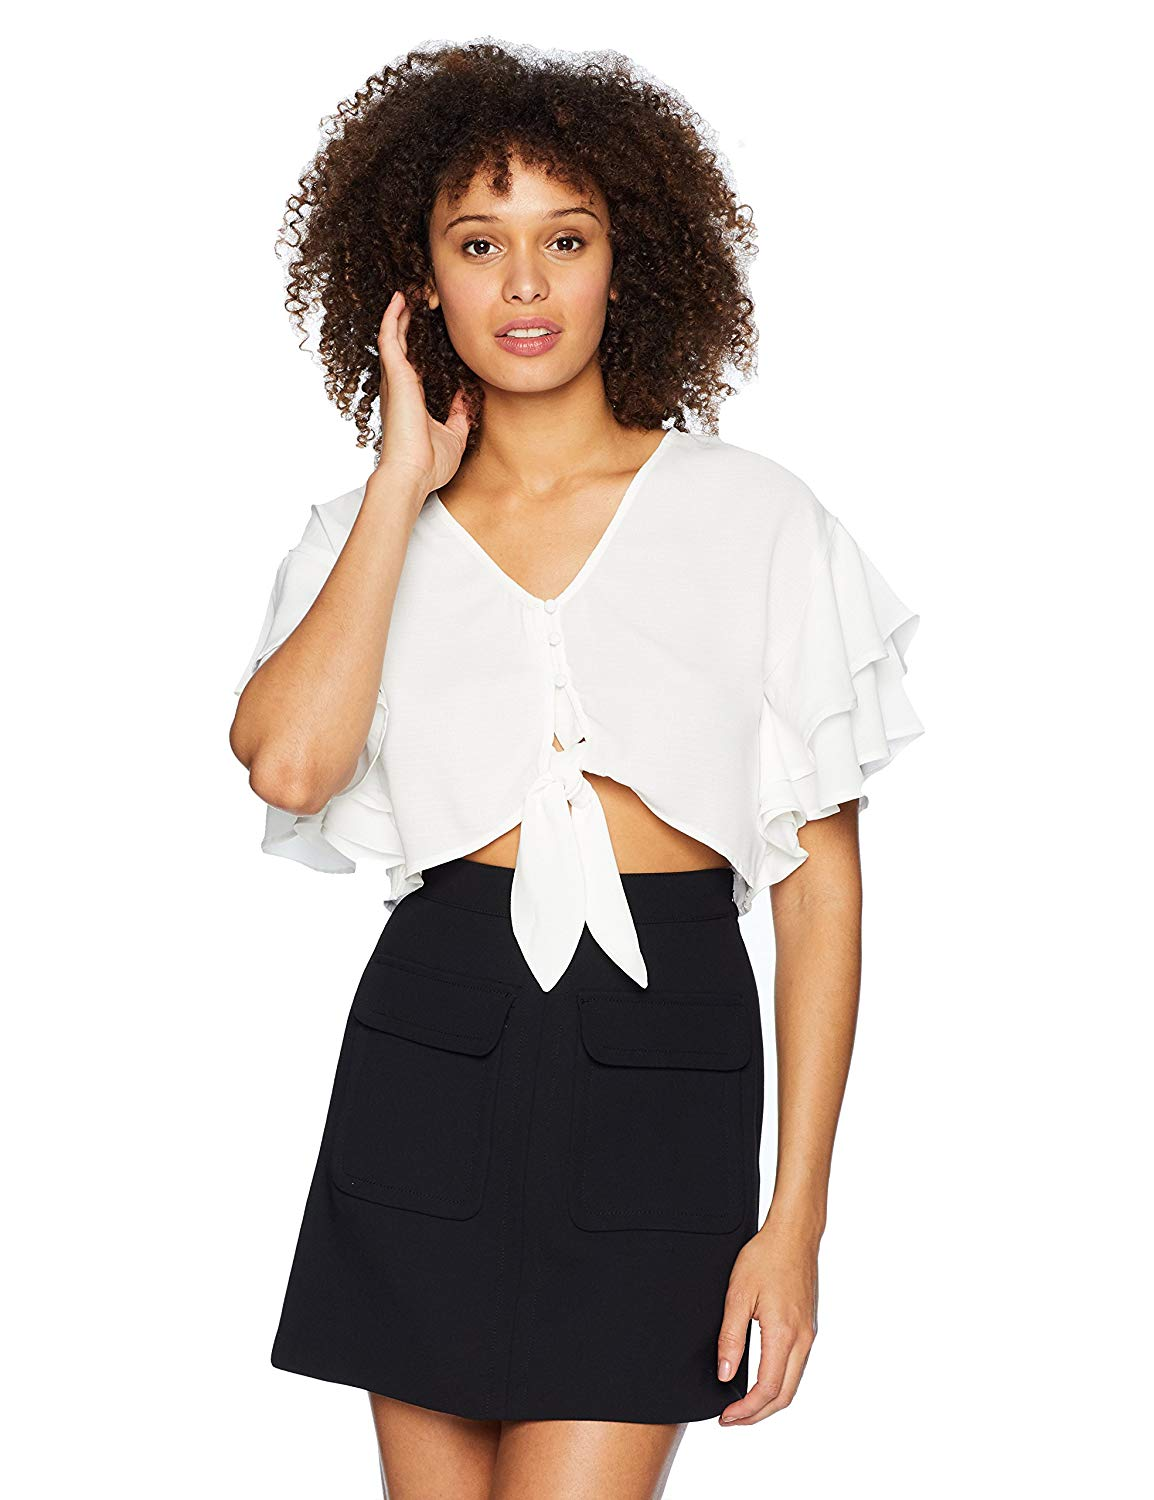 a541864309a Get Quotations · Moon River Women s Ruffled Short Sleeve Crop Top with  Front Tie